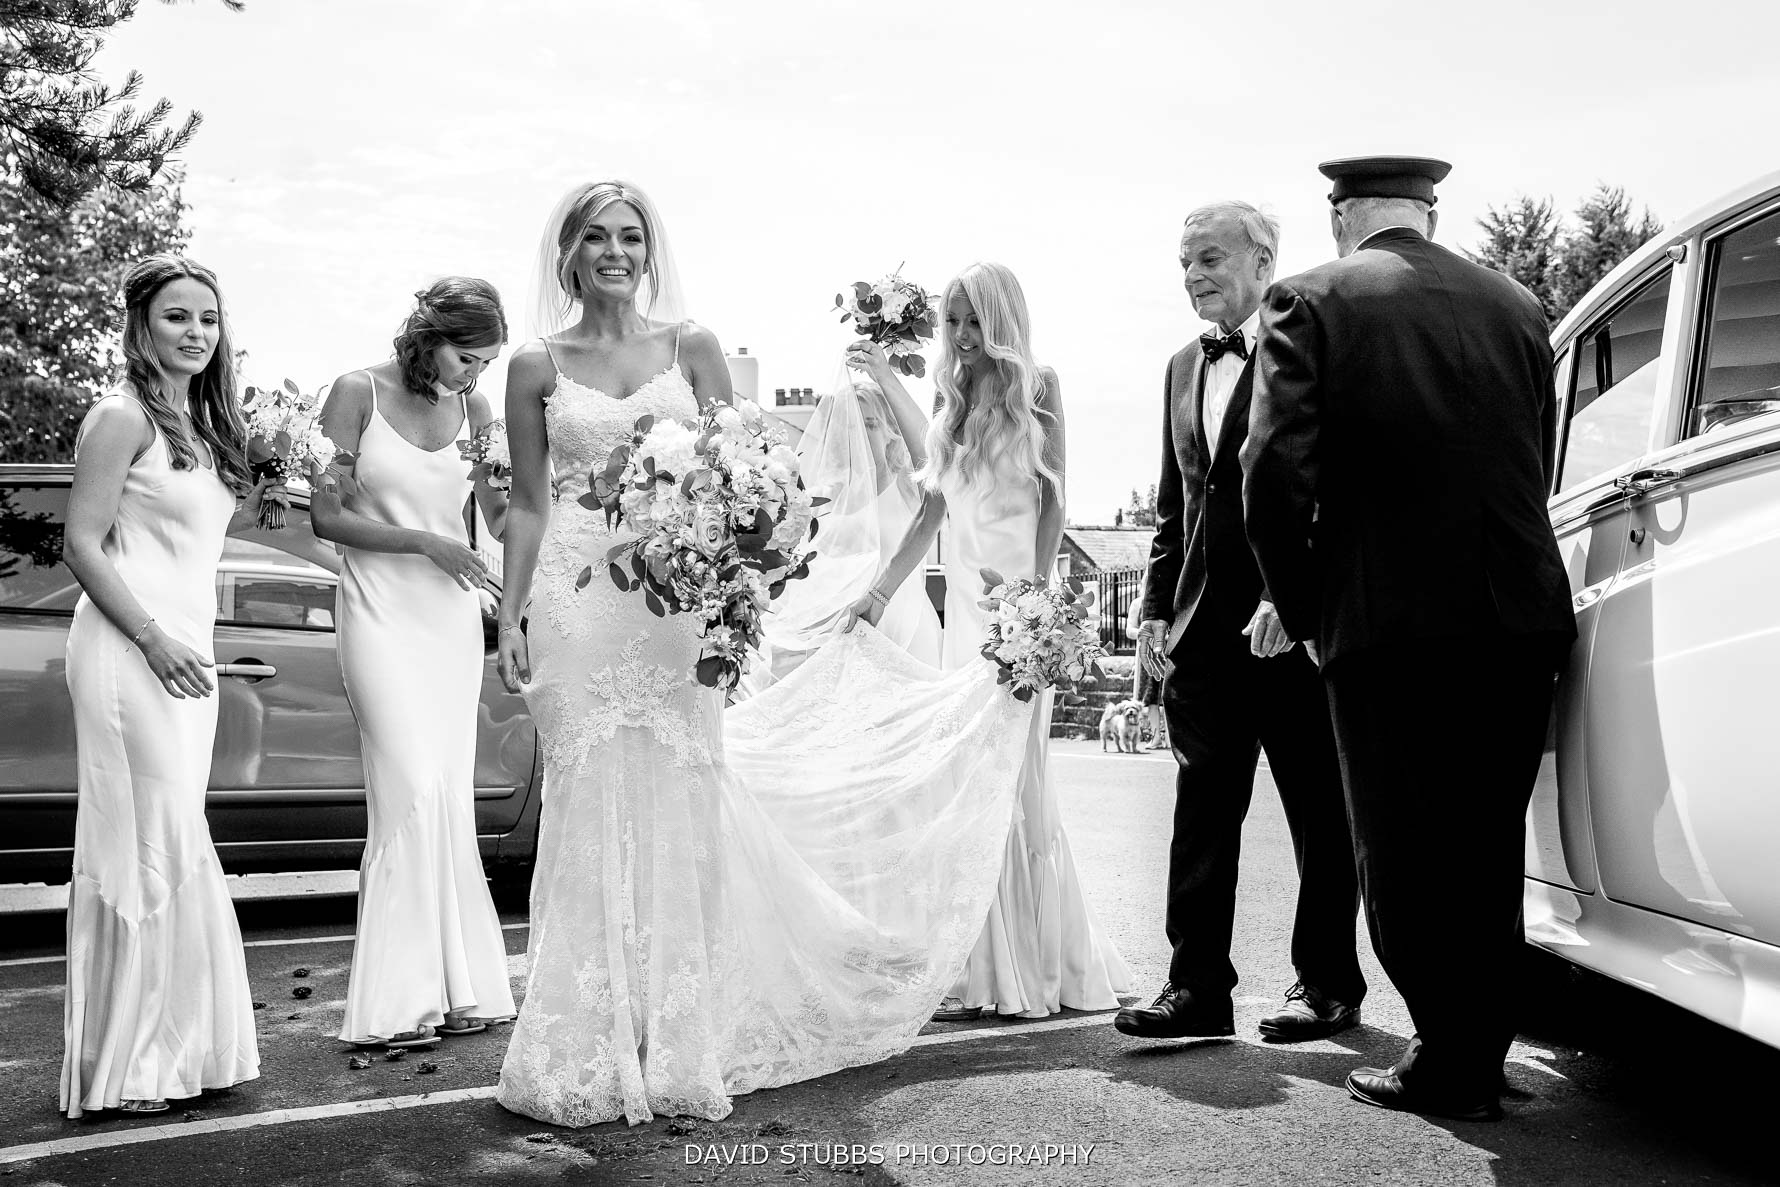 low angle of the wedding party on arrival